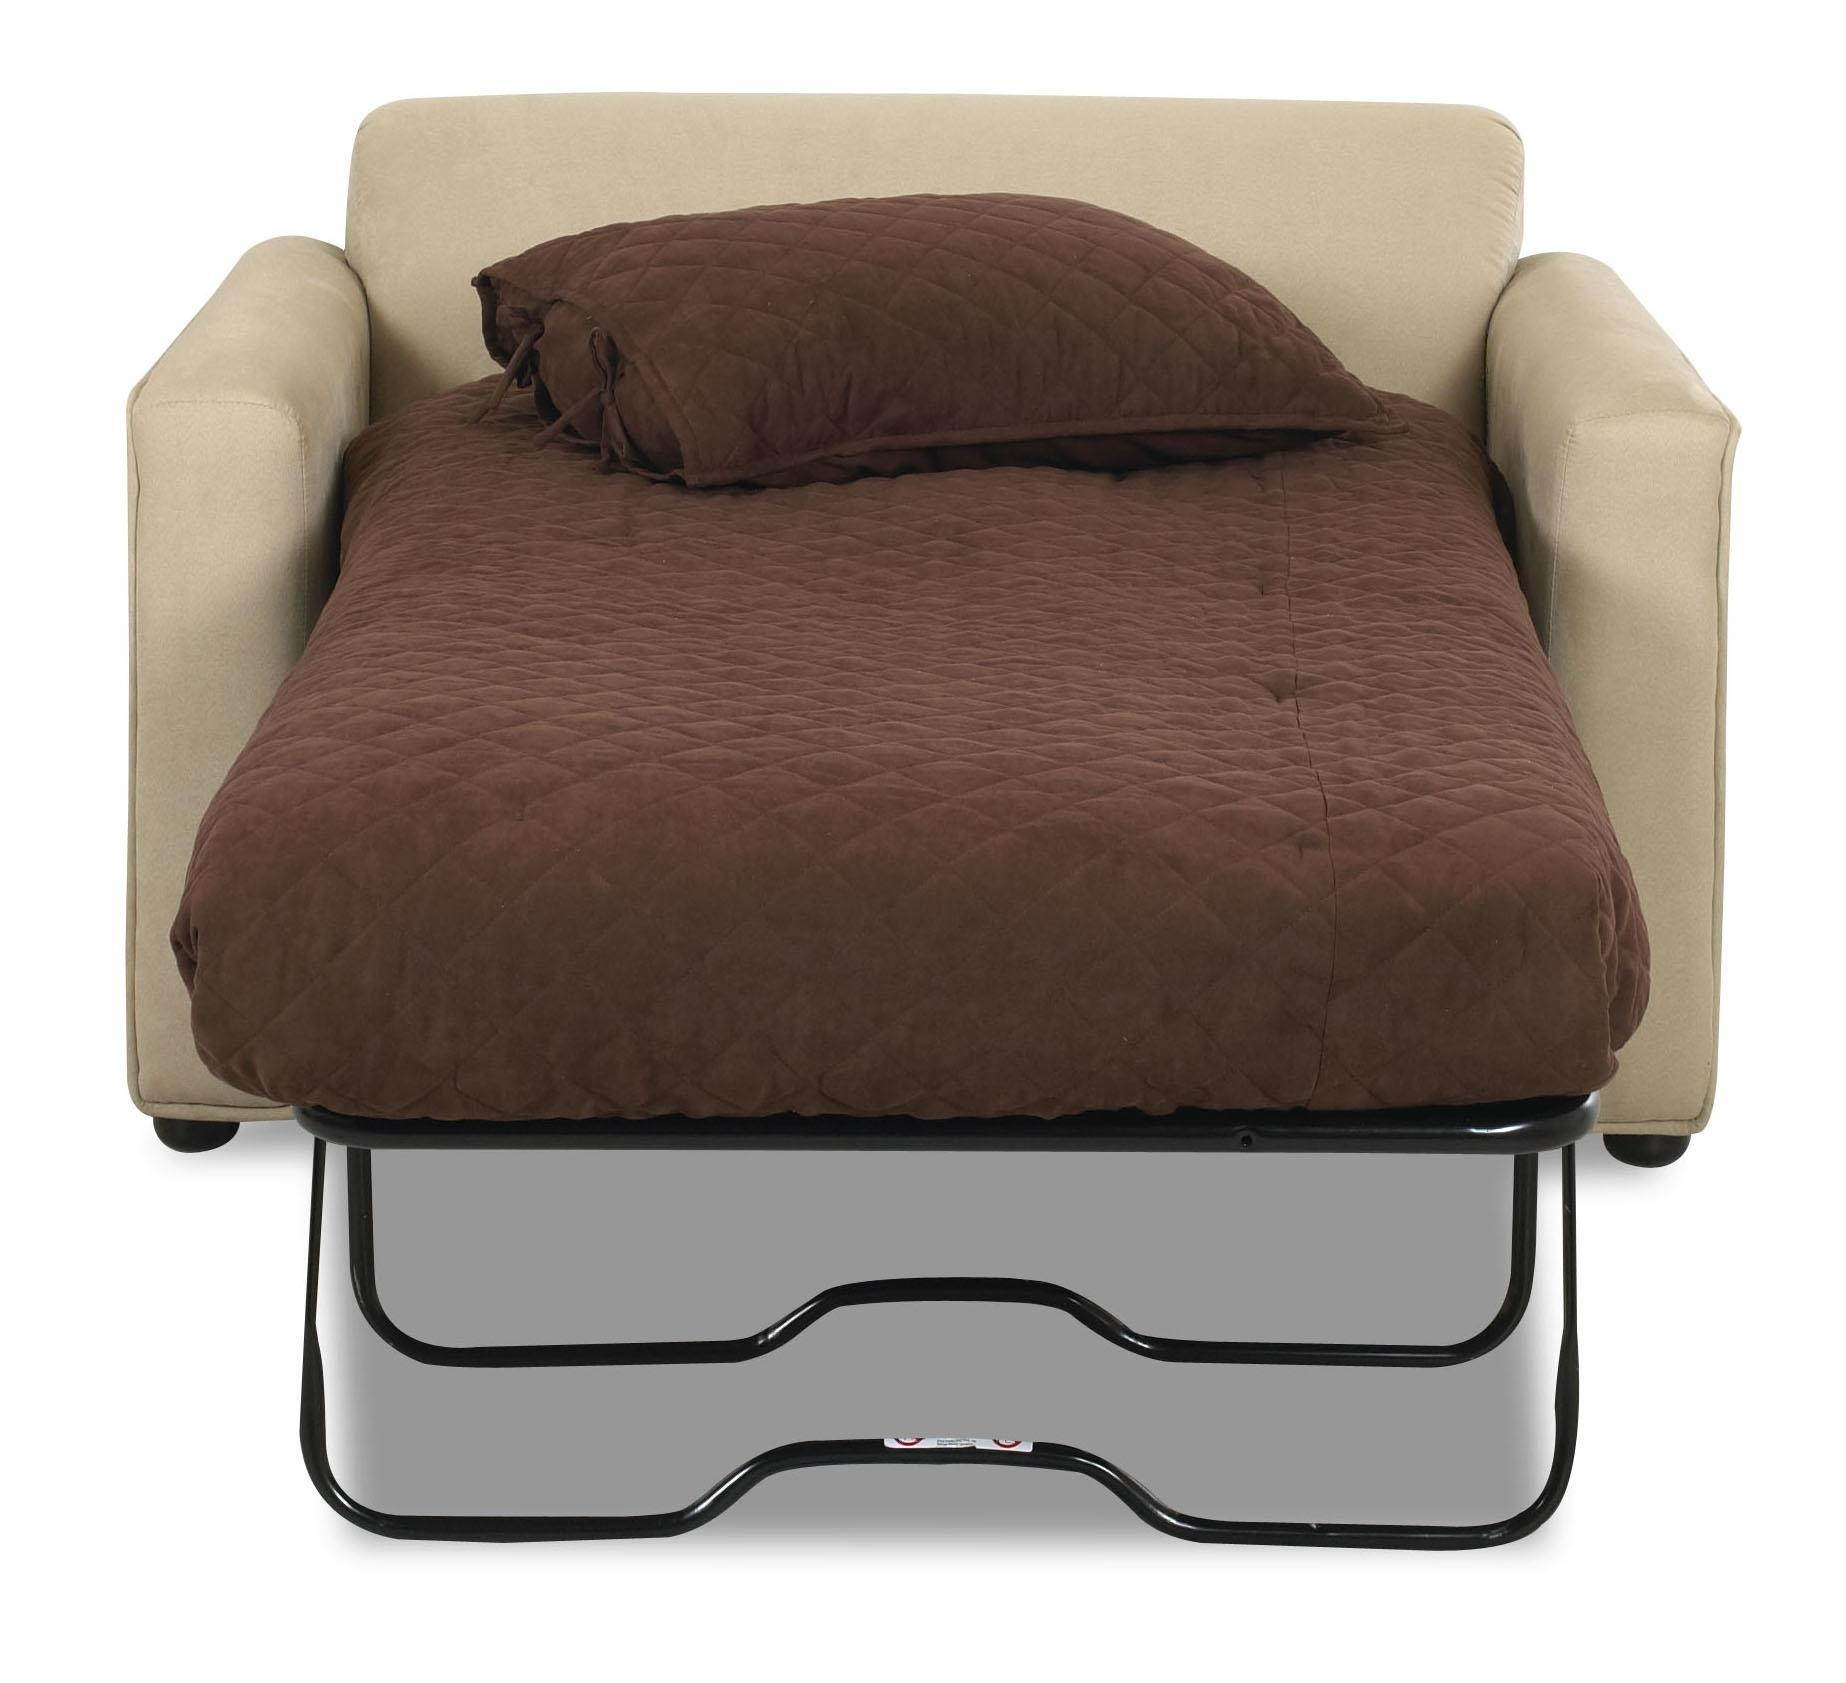 White Cream Color Leather Twin Size Sleeper Sofa Chairs With Fold With Regard To Twin Sleeper Sofa Chairs (View 4 of 20)